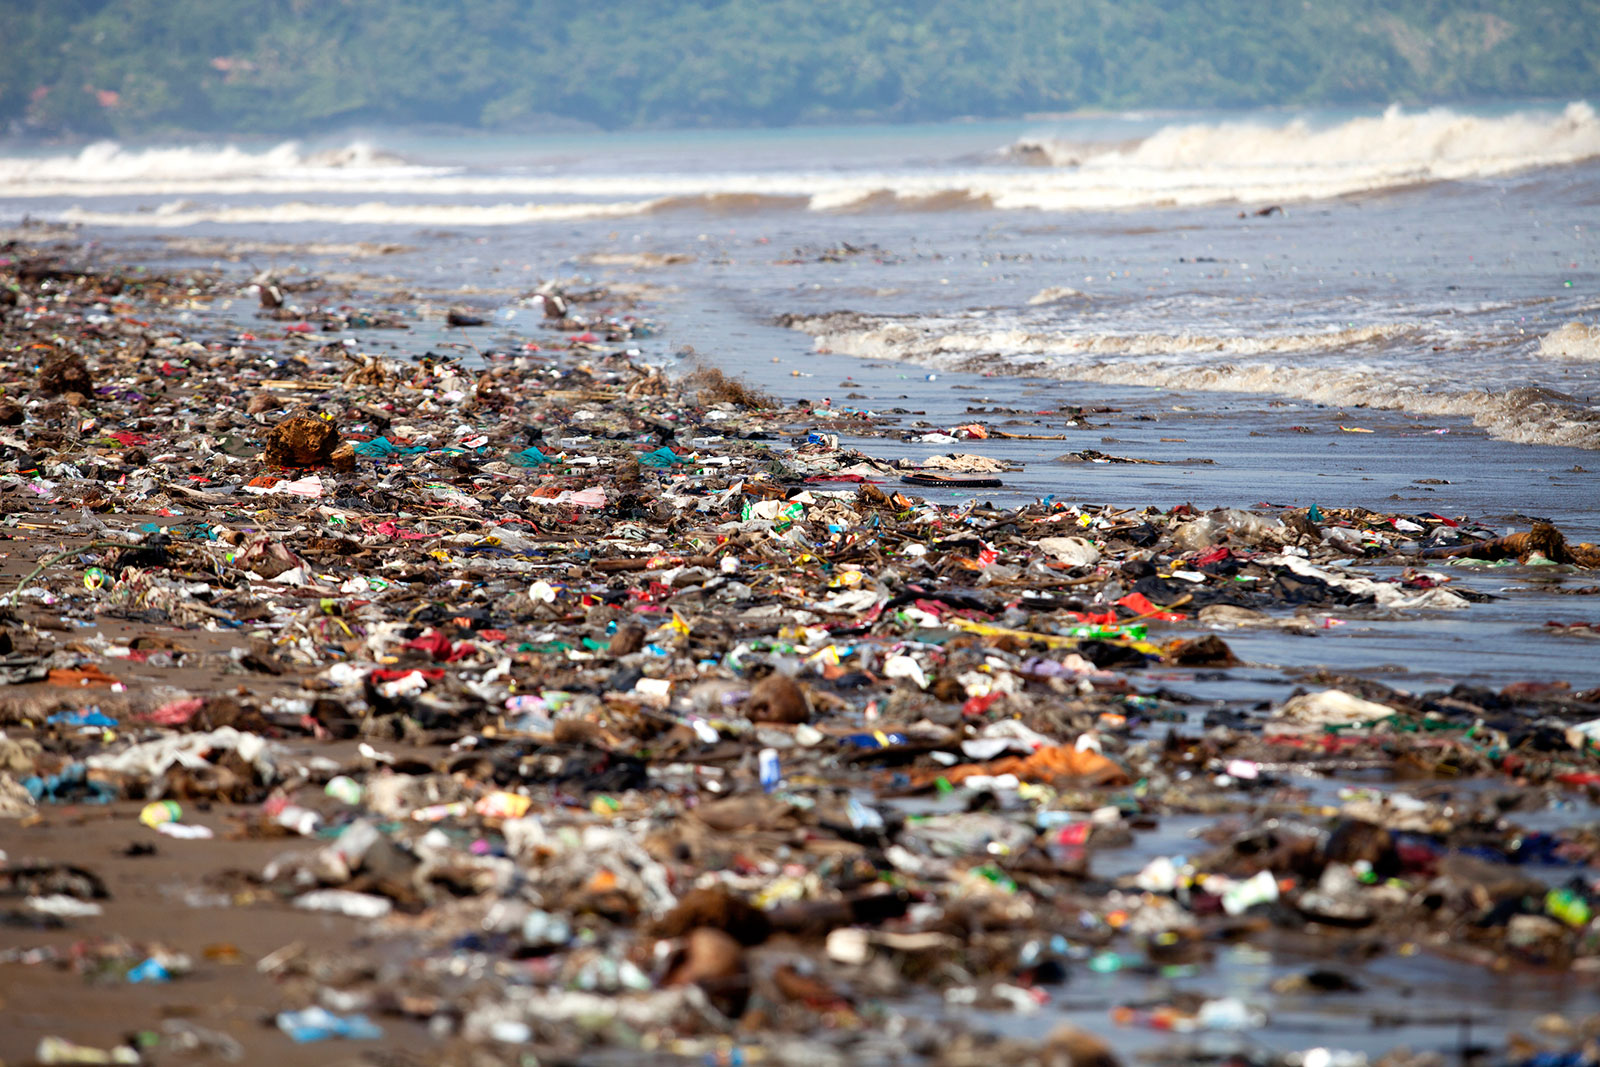 ocean dumping Case study: ocean dumping felicia grabe august 13, 2012 geoff wood/ soc 320 after reading the case study i find it very interesting that the rates in which we dump waste into the oceans declined but still around new york there was still a lot of dumping into the ocean.